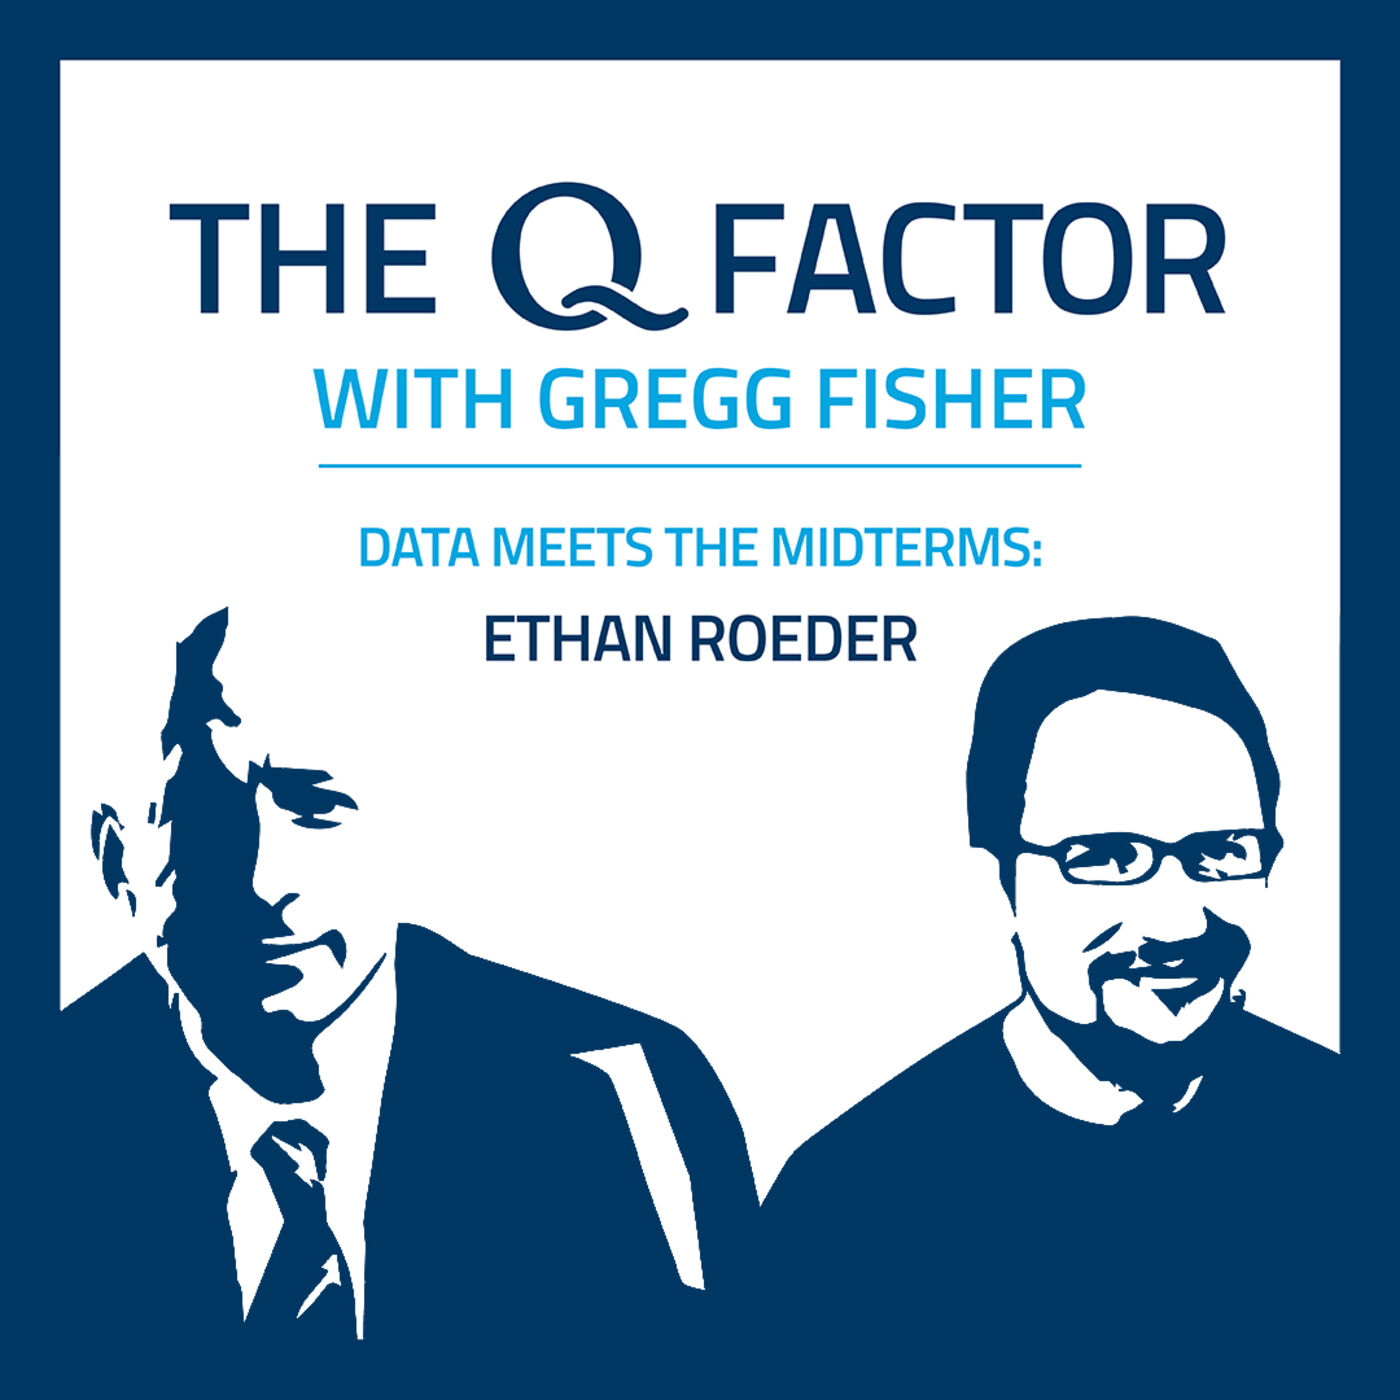 Ethan Roeder: Data meets the Midterms